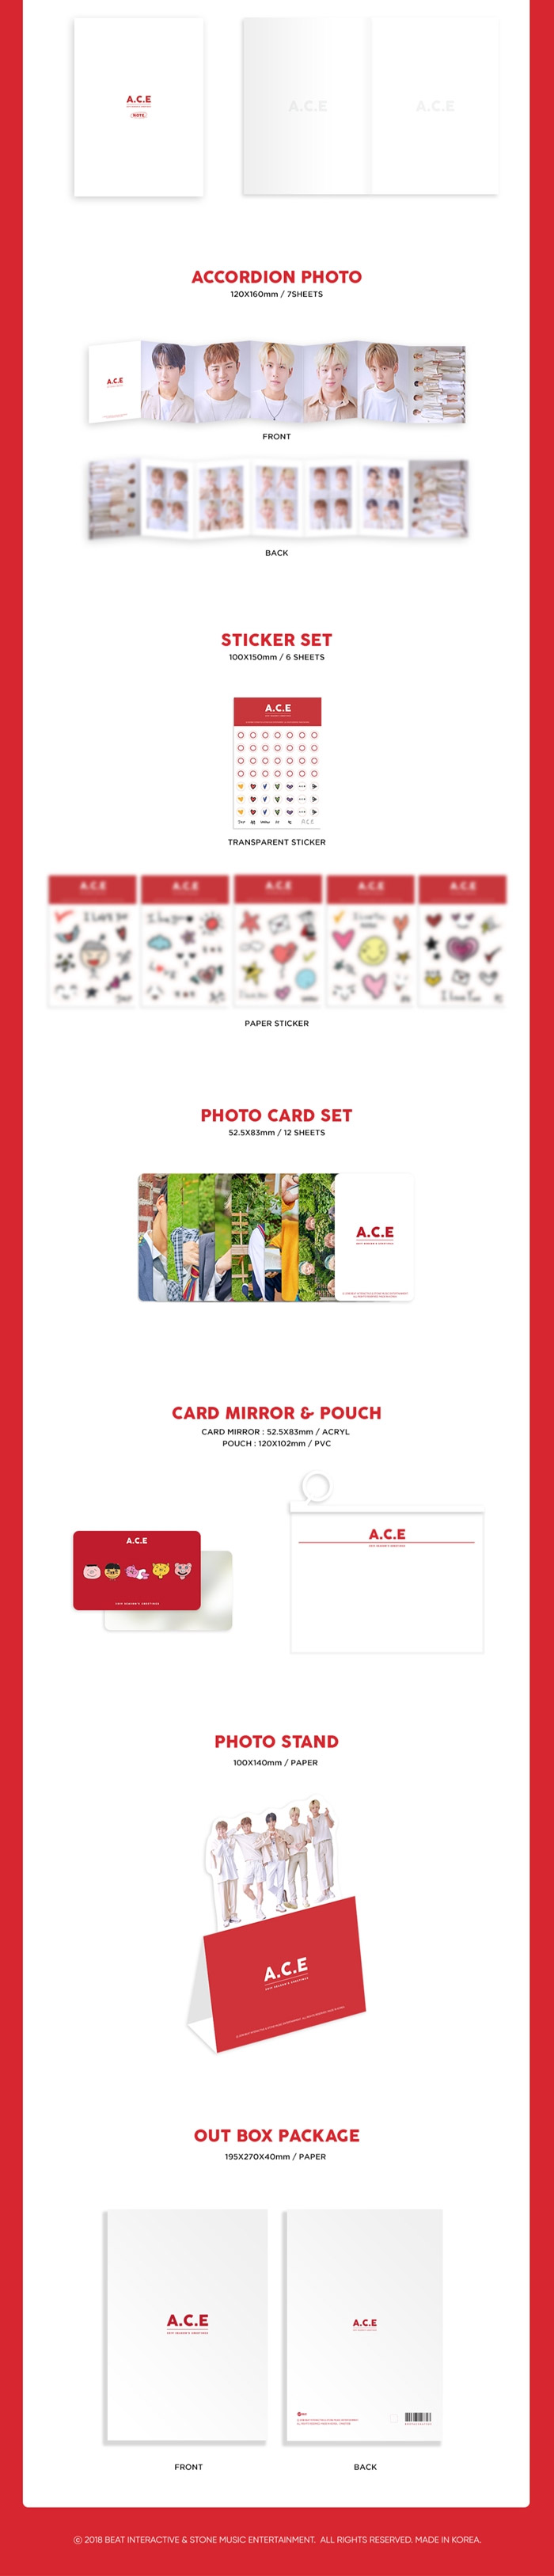 ace_2019seasonsgreetings_02.jpg